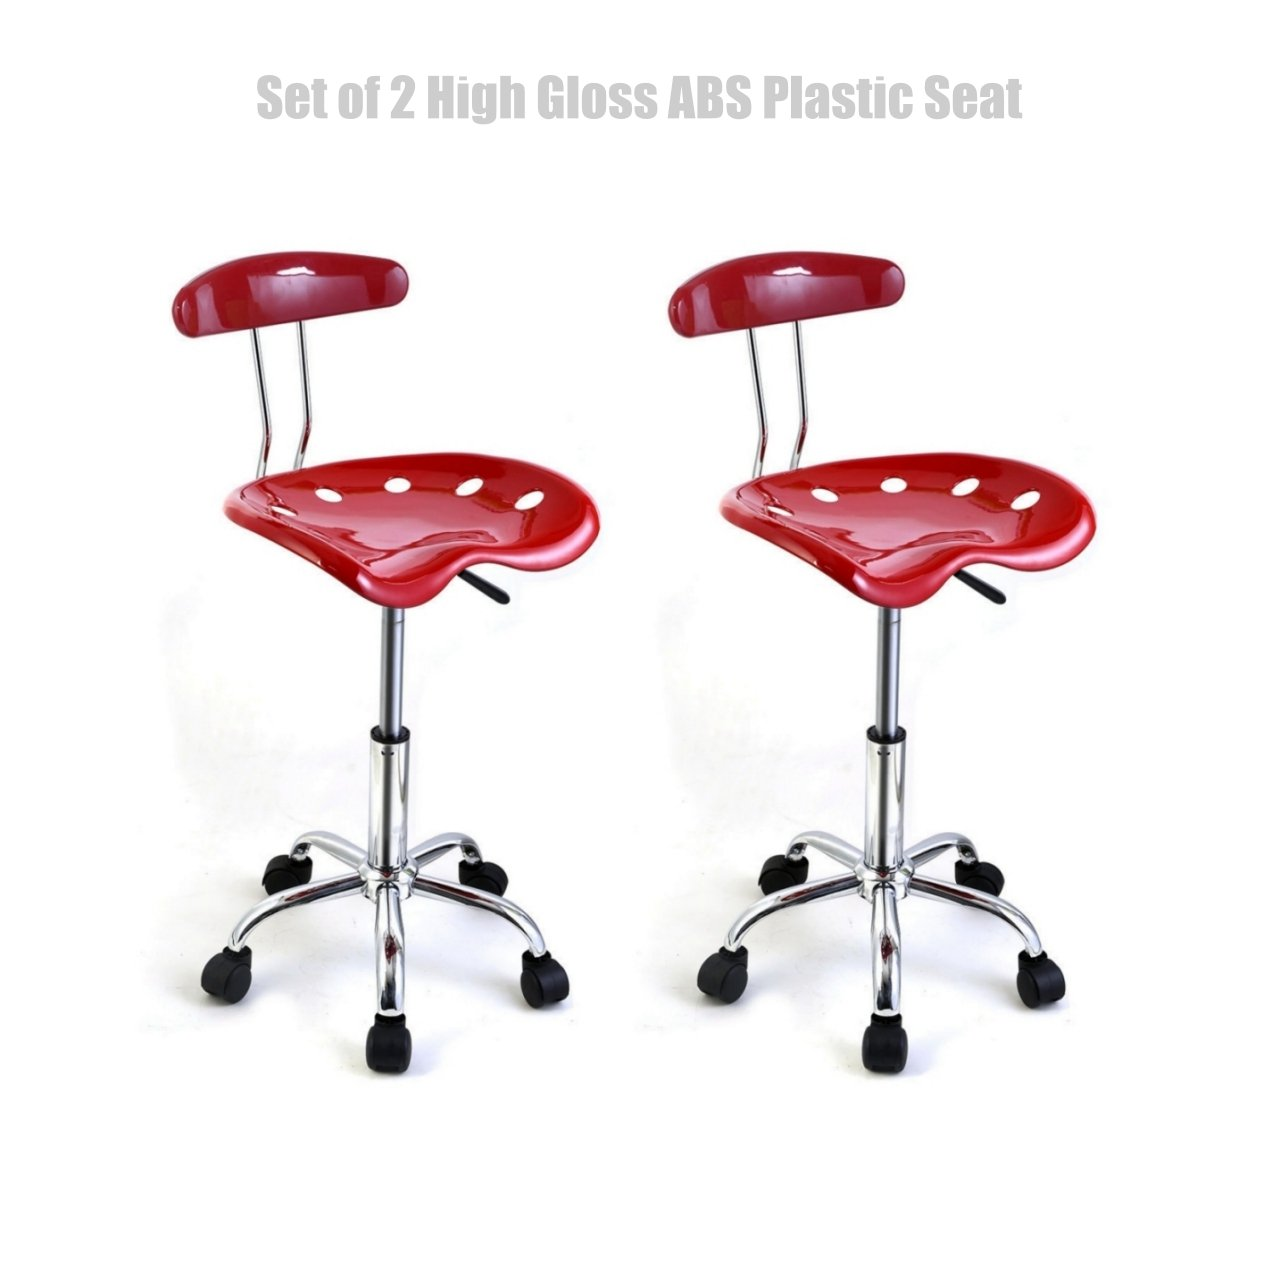 Modern Style Durable Molded ABS Plastic Seat Adjustable Bar Stools Swivel Drafting Dining Chair Solid Chrome Finish Base - Set of 2 Red #1478